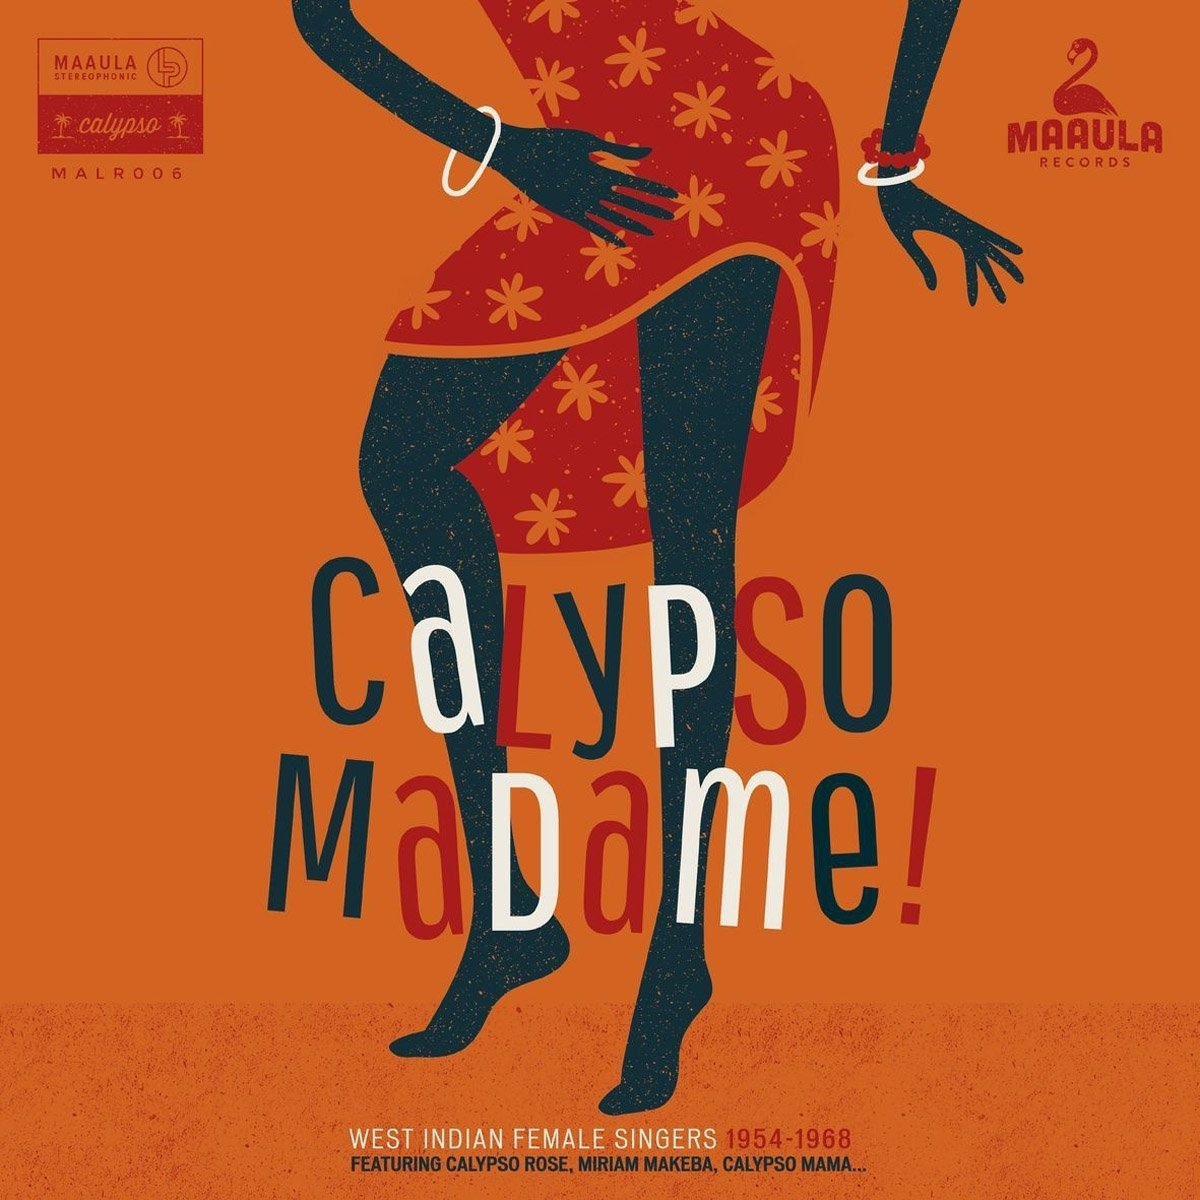 world 02 18 calypso Madame